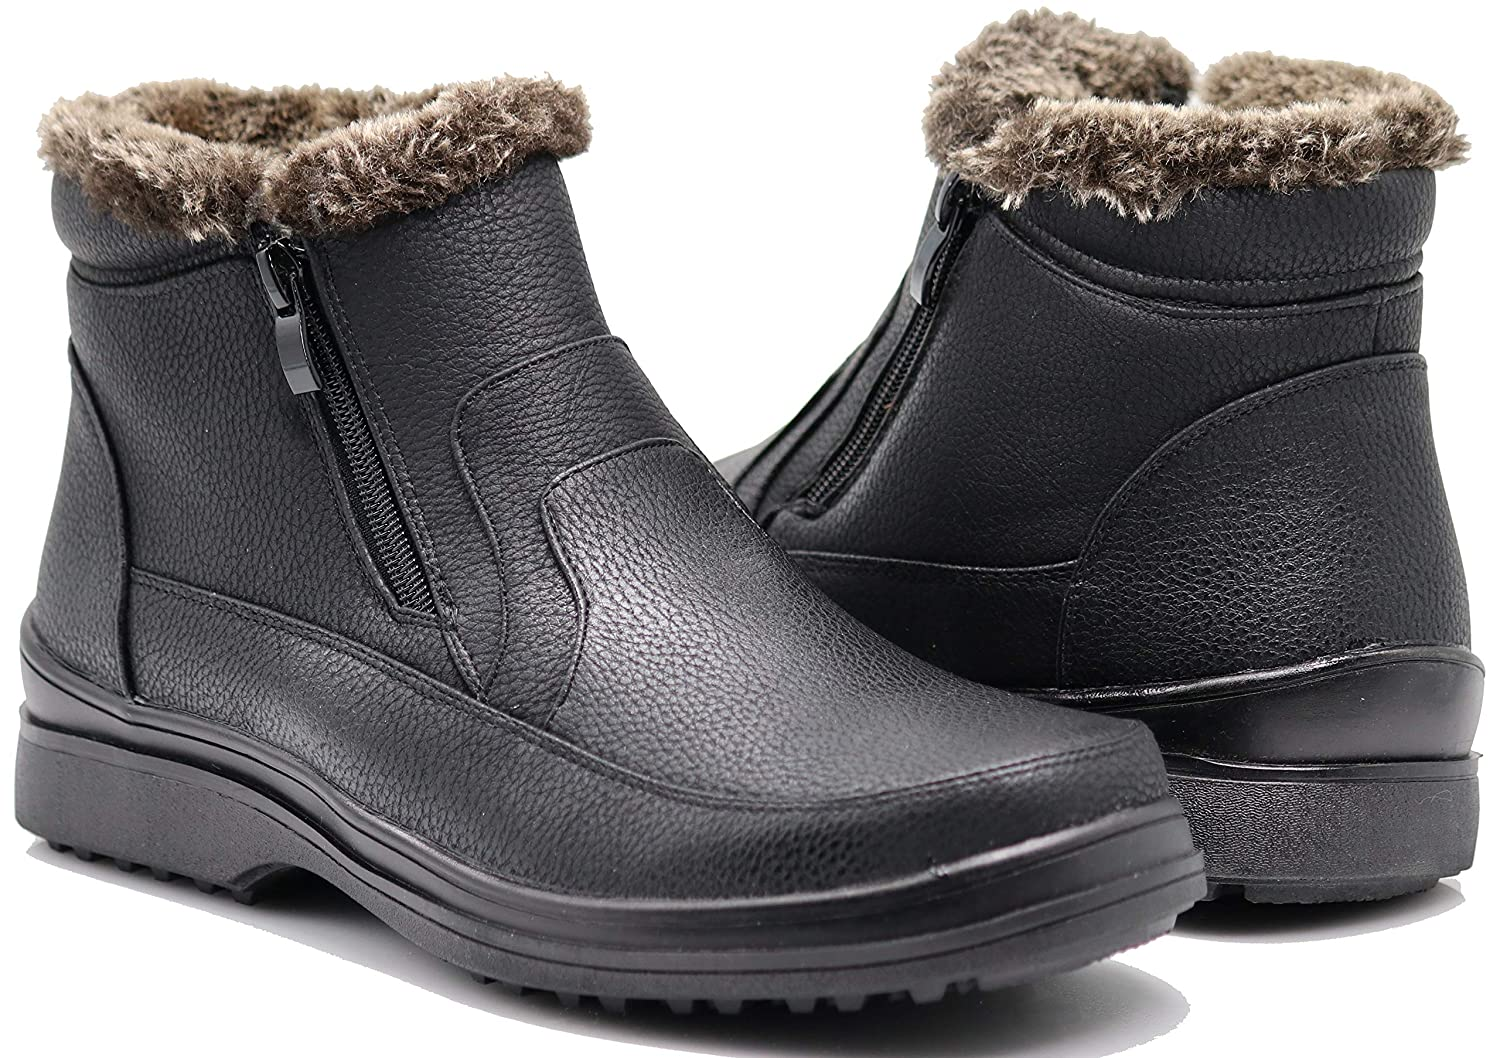 Enzo Romeo RU2N Men's Winter Cold Weather Snow Boots with Fur Fleece Lining Slip On Shoes